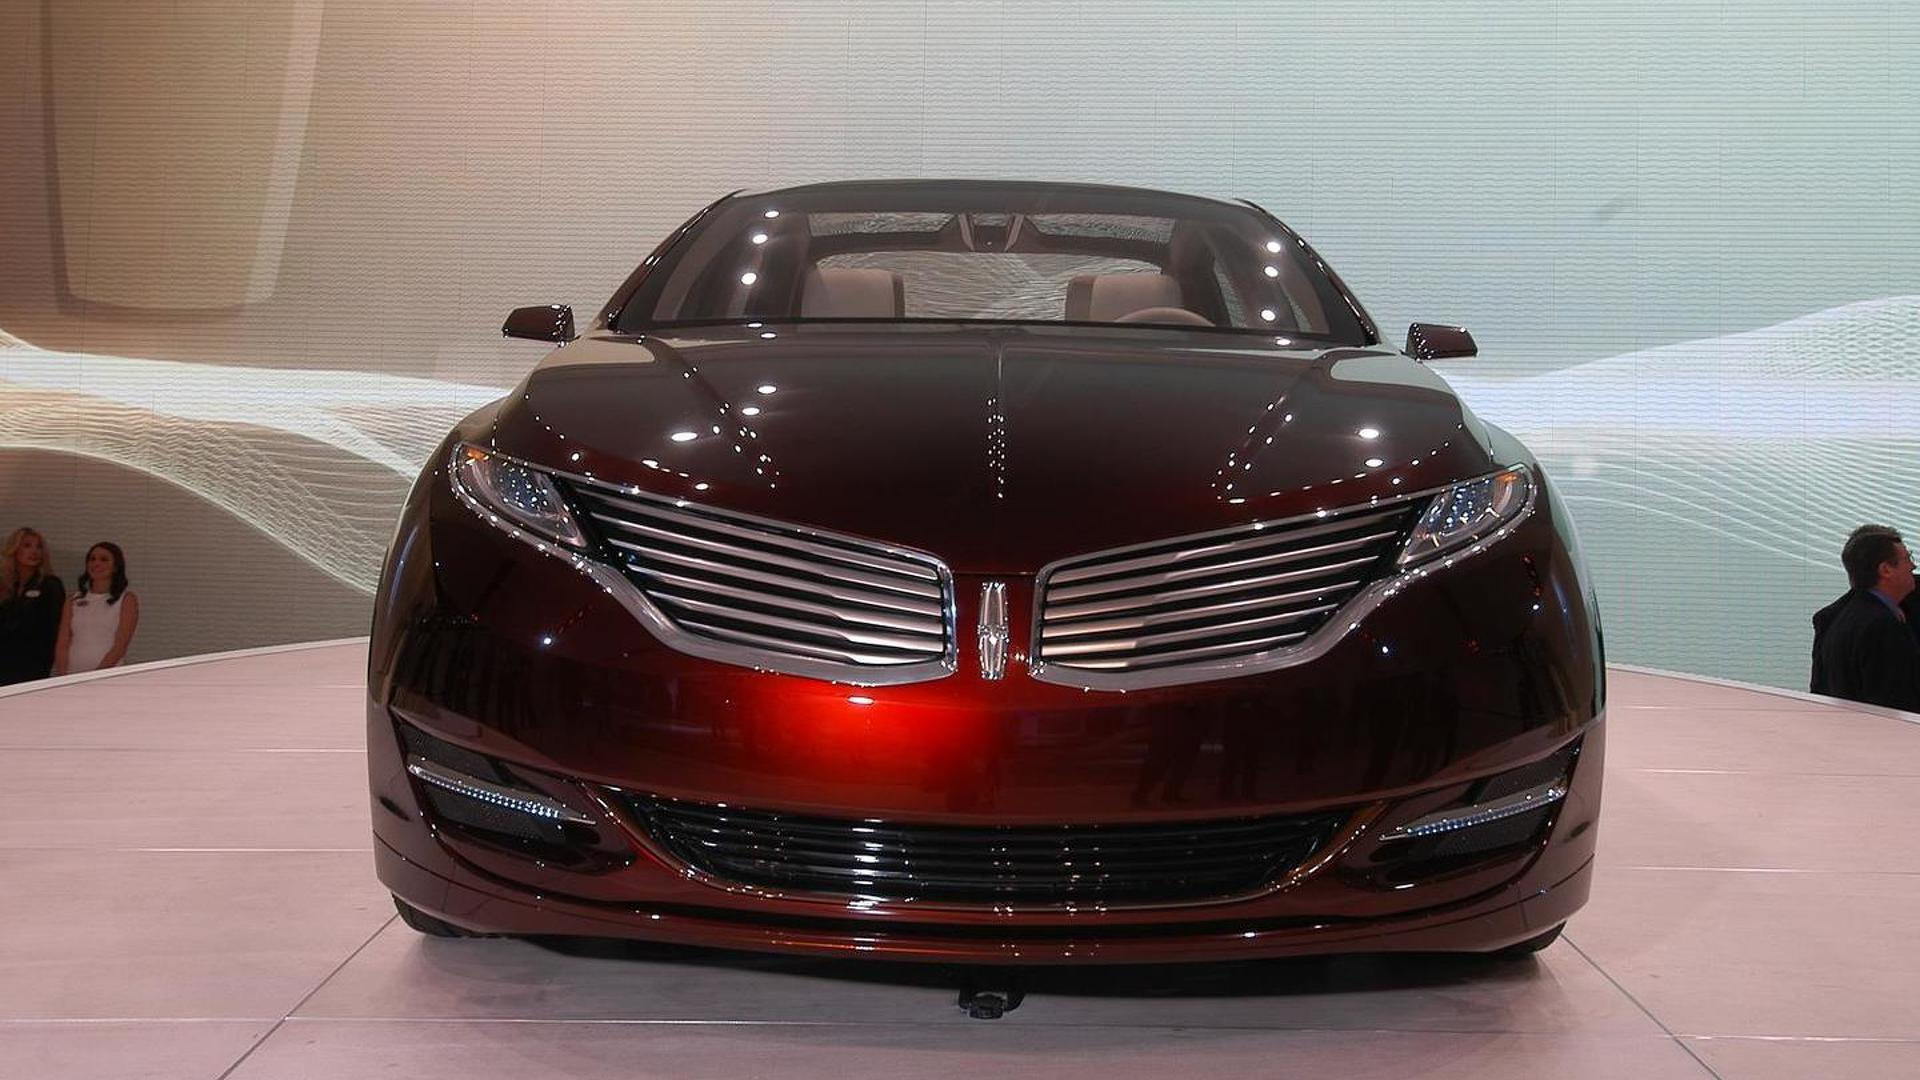 https://icdn-8.motor1.com/images/mgl/A3BL2/s1/2012-290218-lincoln-mkz-concept-at-2012-detroit-auto-show1.jpg